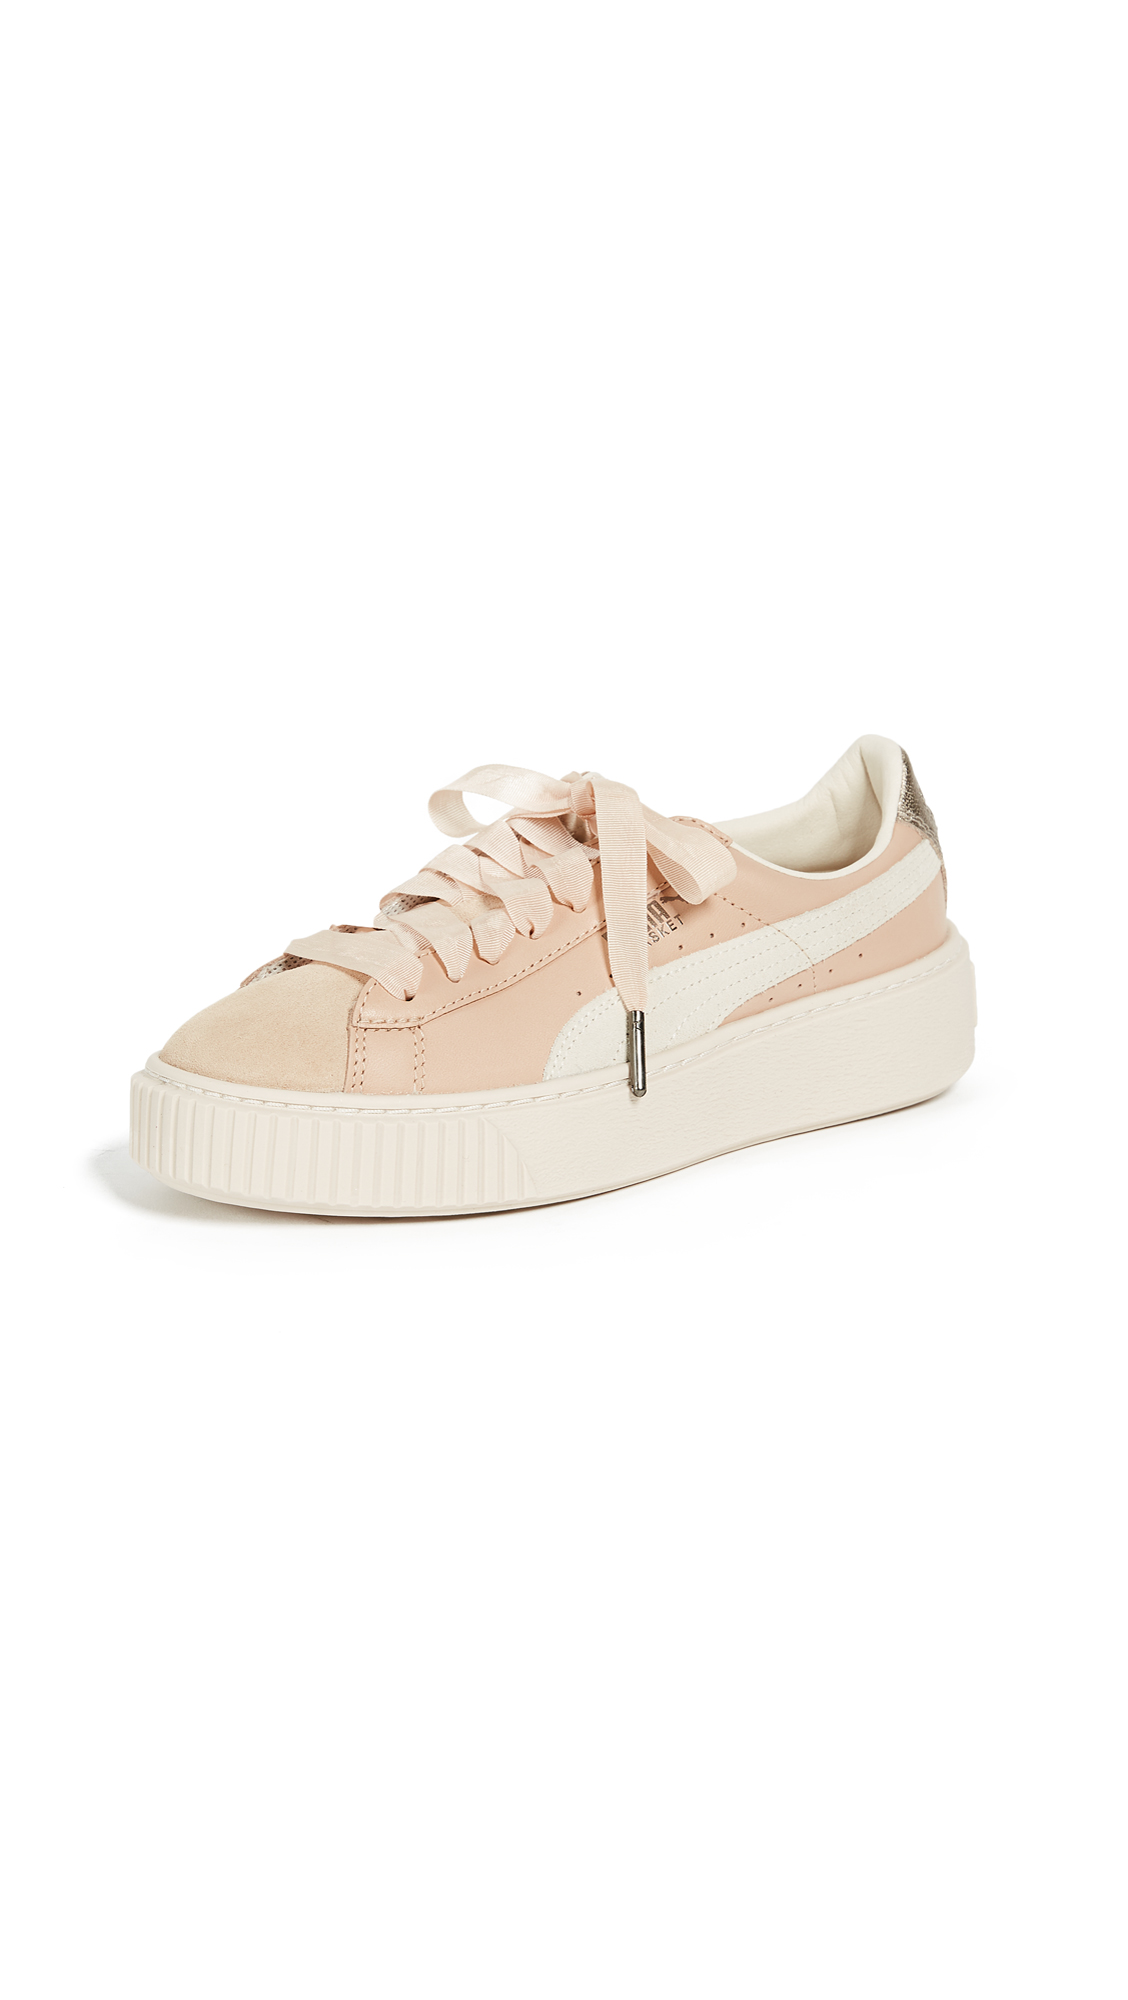 PUMA Platform Up Sneakers - Natural Vachetta/Birch